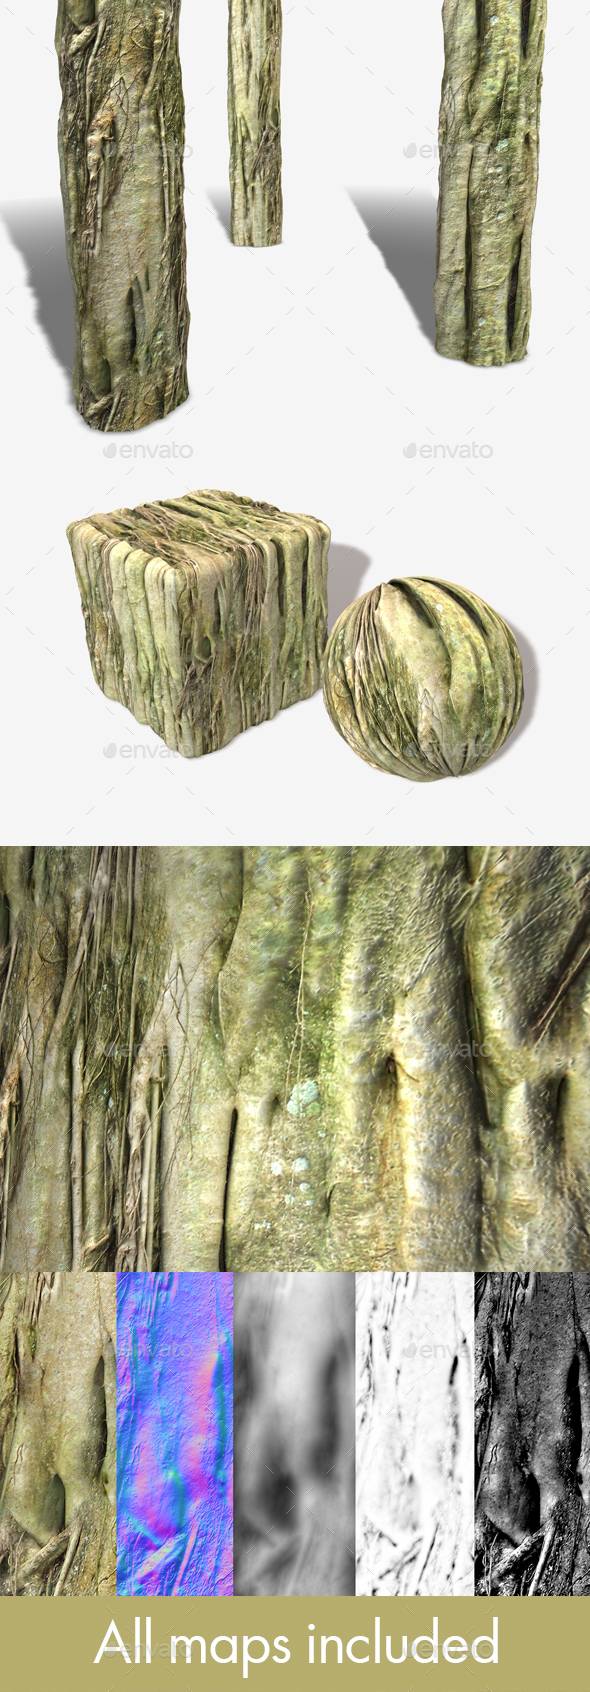 Swamp Tree Roots Seamless Texture - 3DOcean Item for Sale